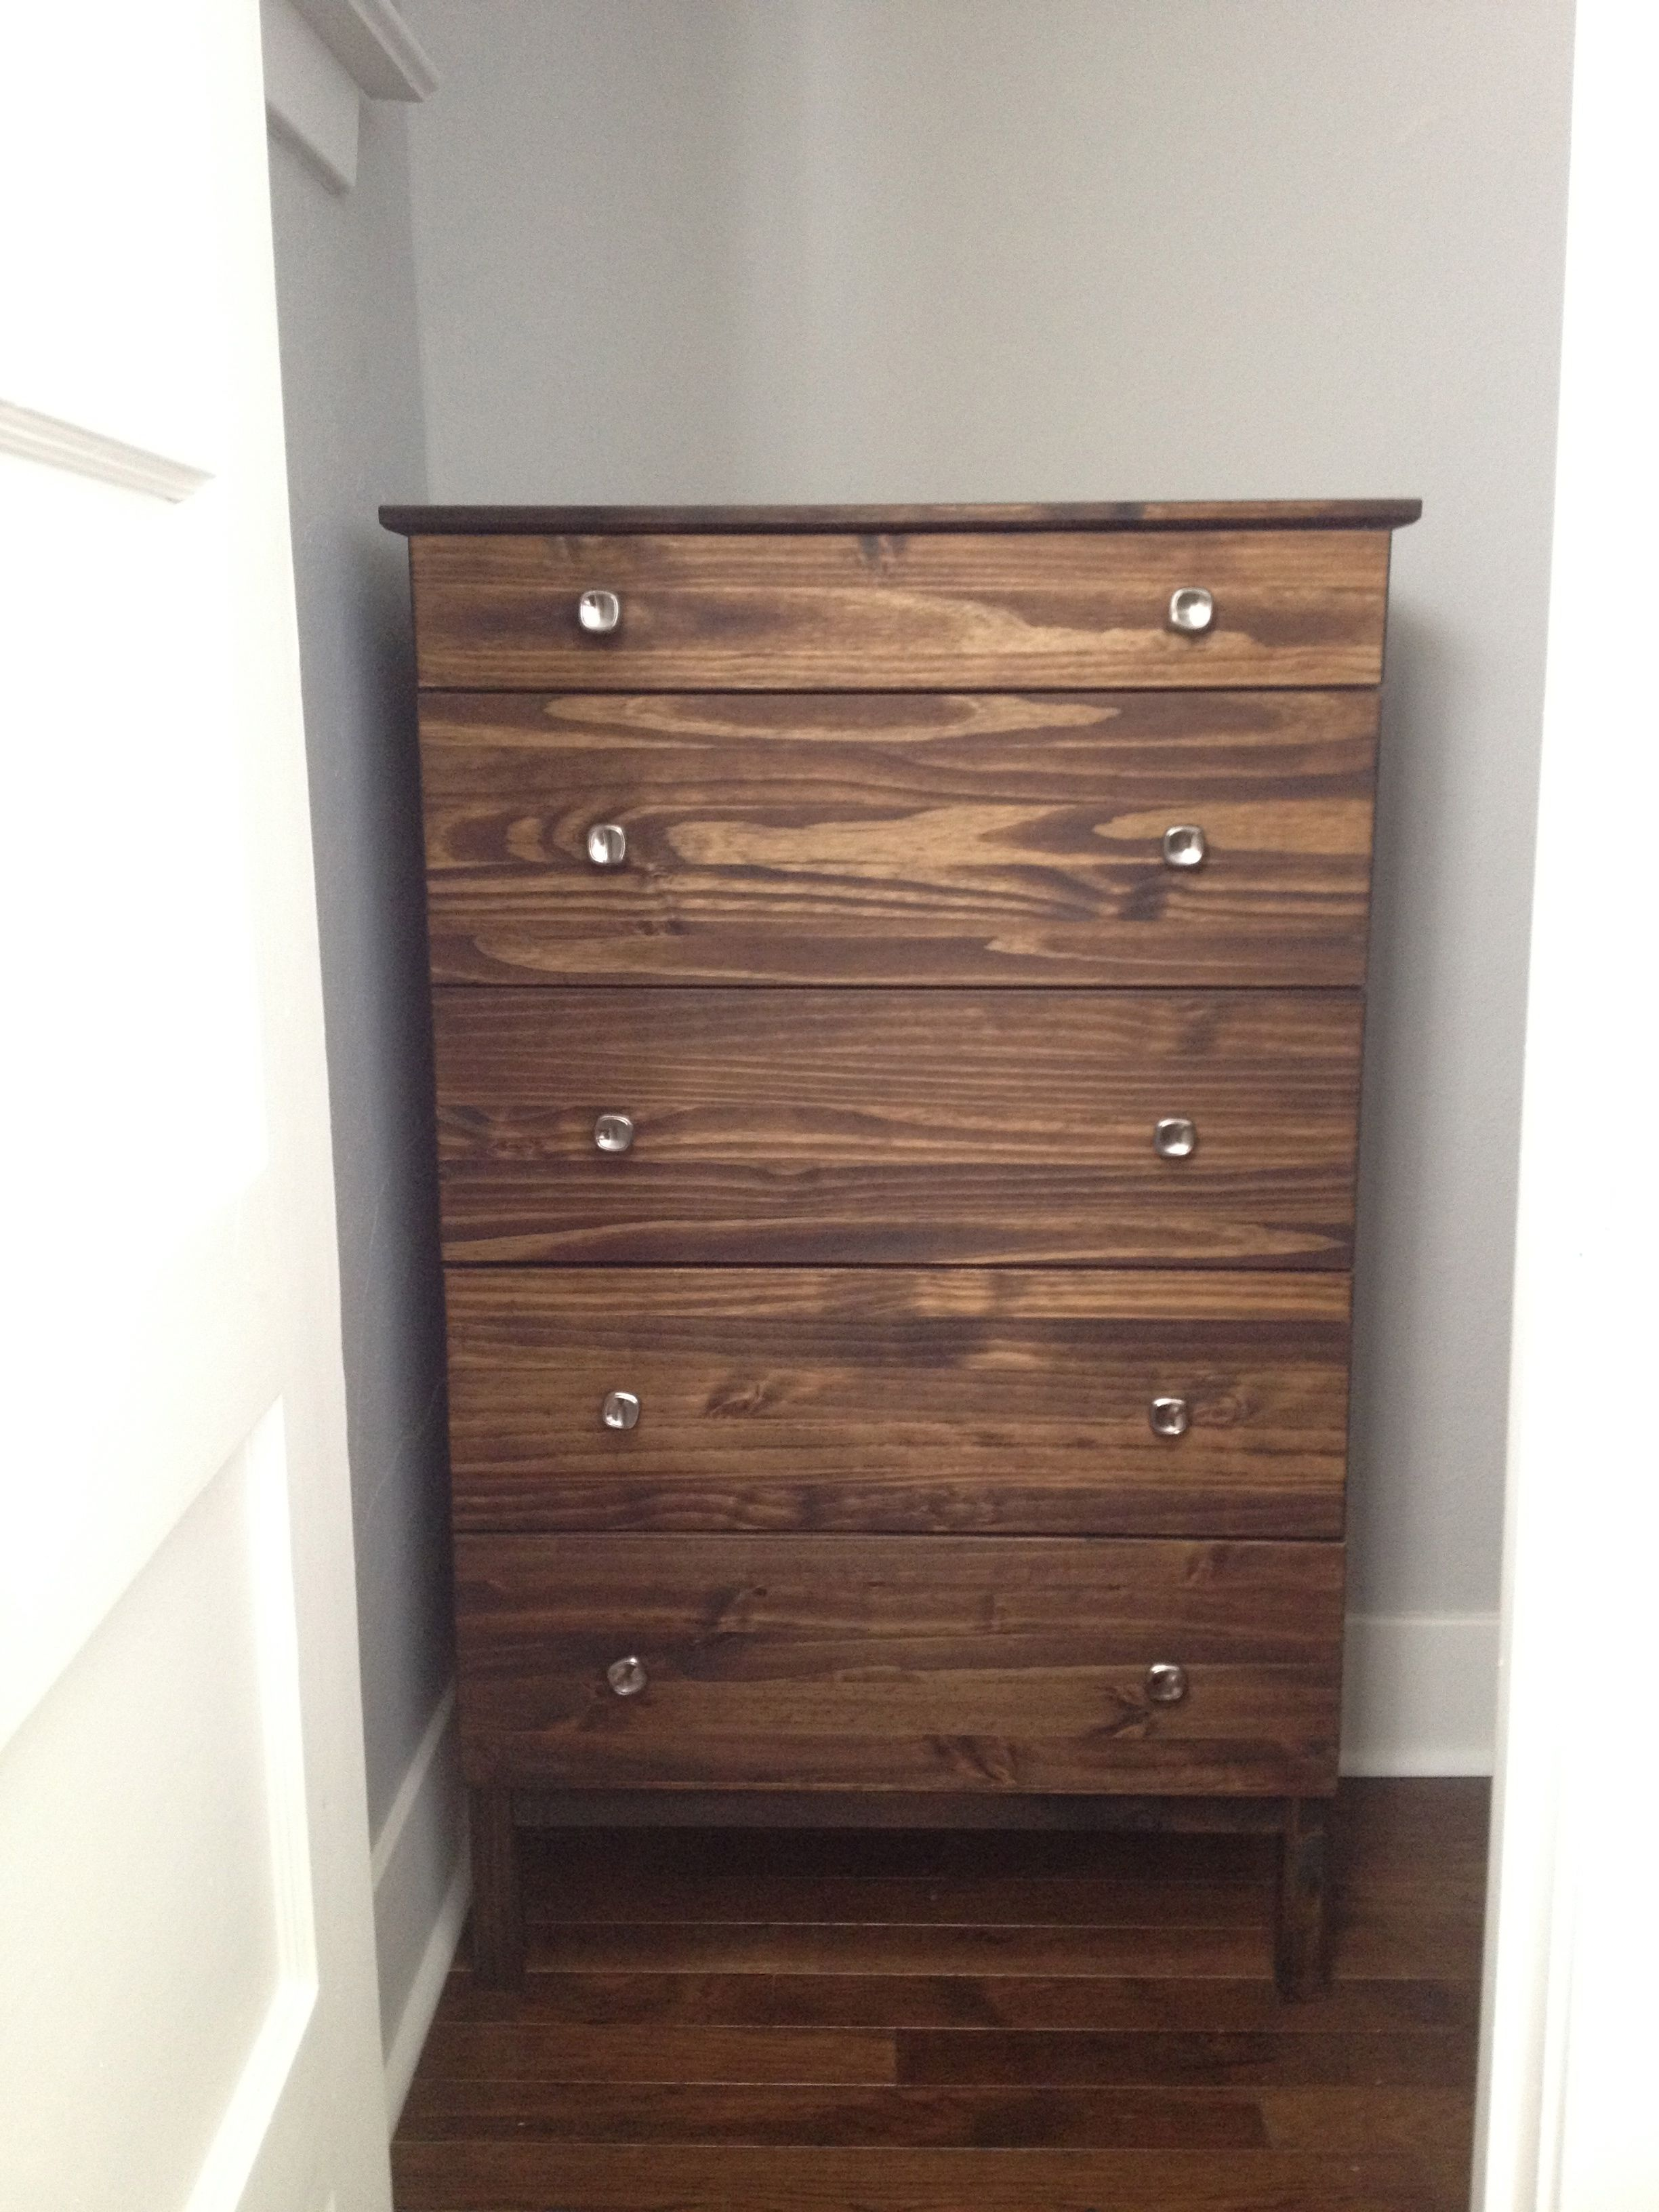 Staining Bedroom Furniture Ikea Tarva Dresser Hack Stains The Ojays And Walnut Stain